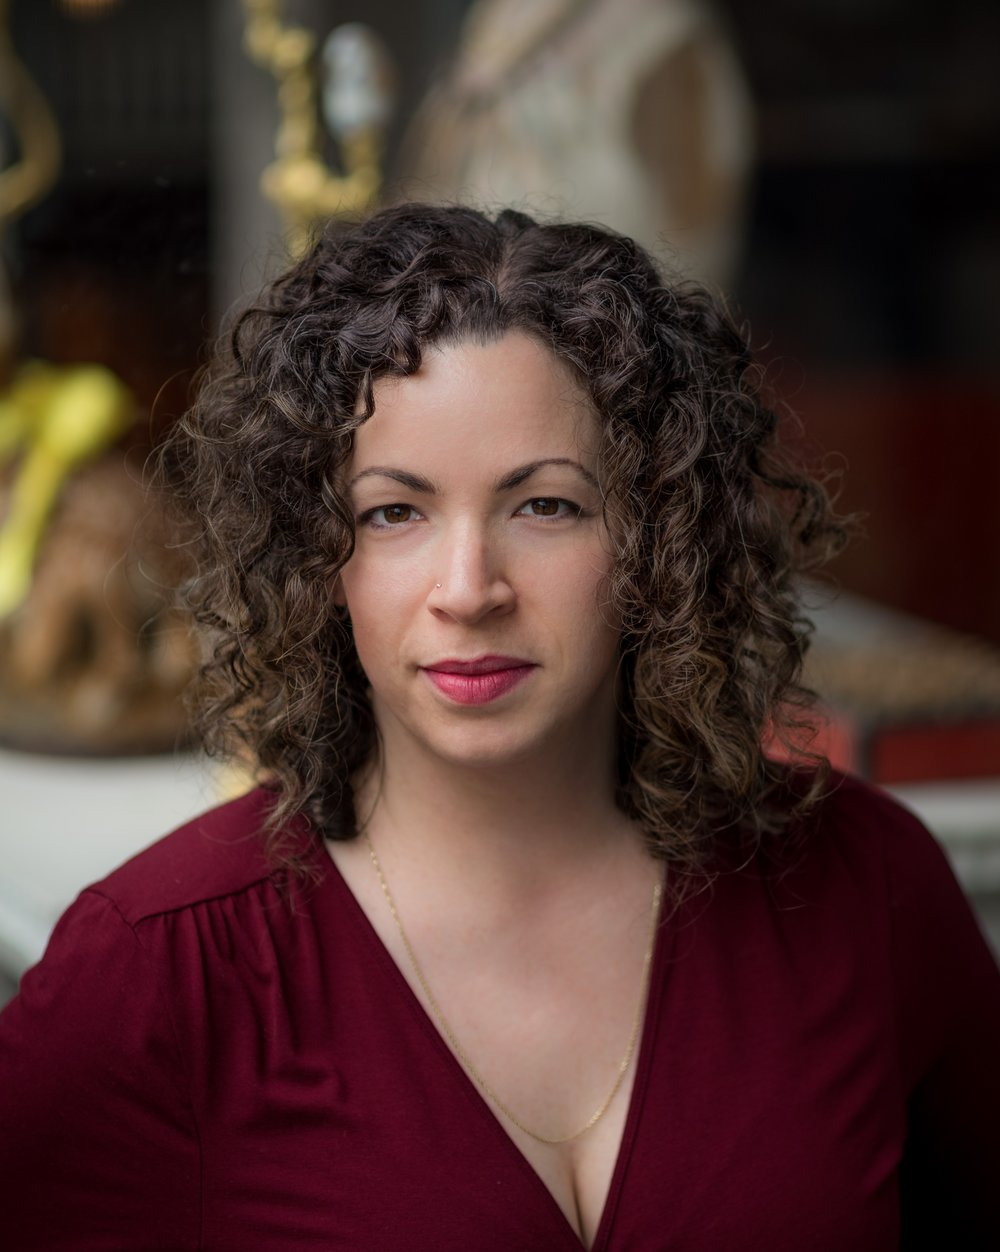 Natalie Singer is the author of the memoir  California Calling: A Self-Interrogation  (2018). Her writing has been published or is forthcoming in  Proximity, Hypertext, Literary Mama, Largehearted Boy, The Nervous Breakdown, Full Grown People , the anthology  Love and Profanity  (2015), and elsewhere. Her awards include the Pacific Northwest Writers Association nonfiction prize and the Alligator Juniper nonfiction prize, and she holds an MFA from the University of Washington.